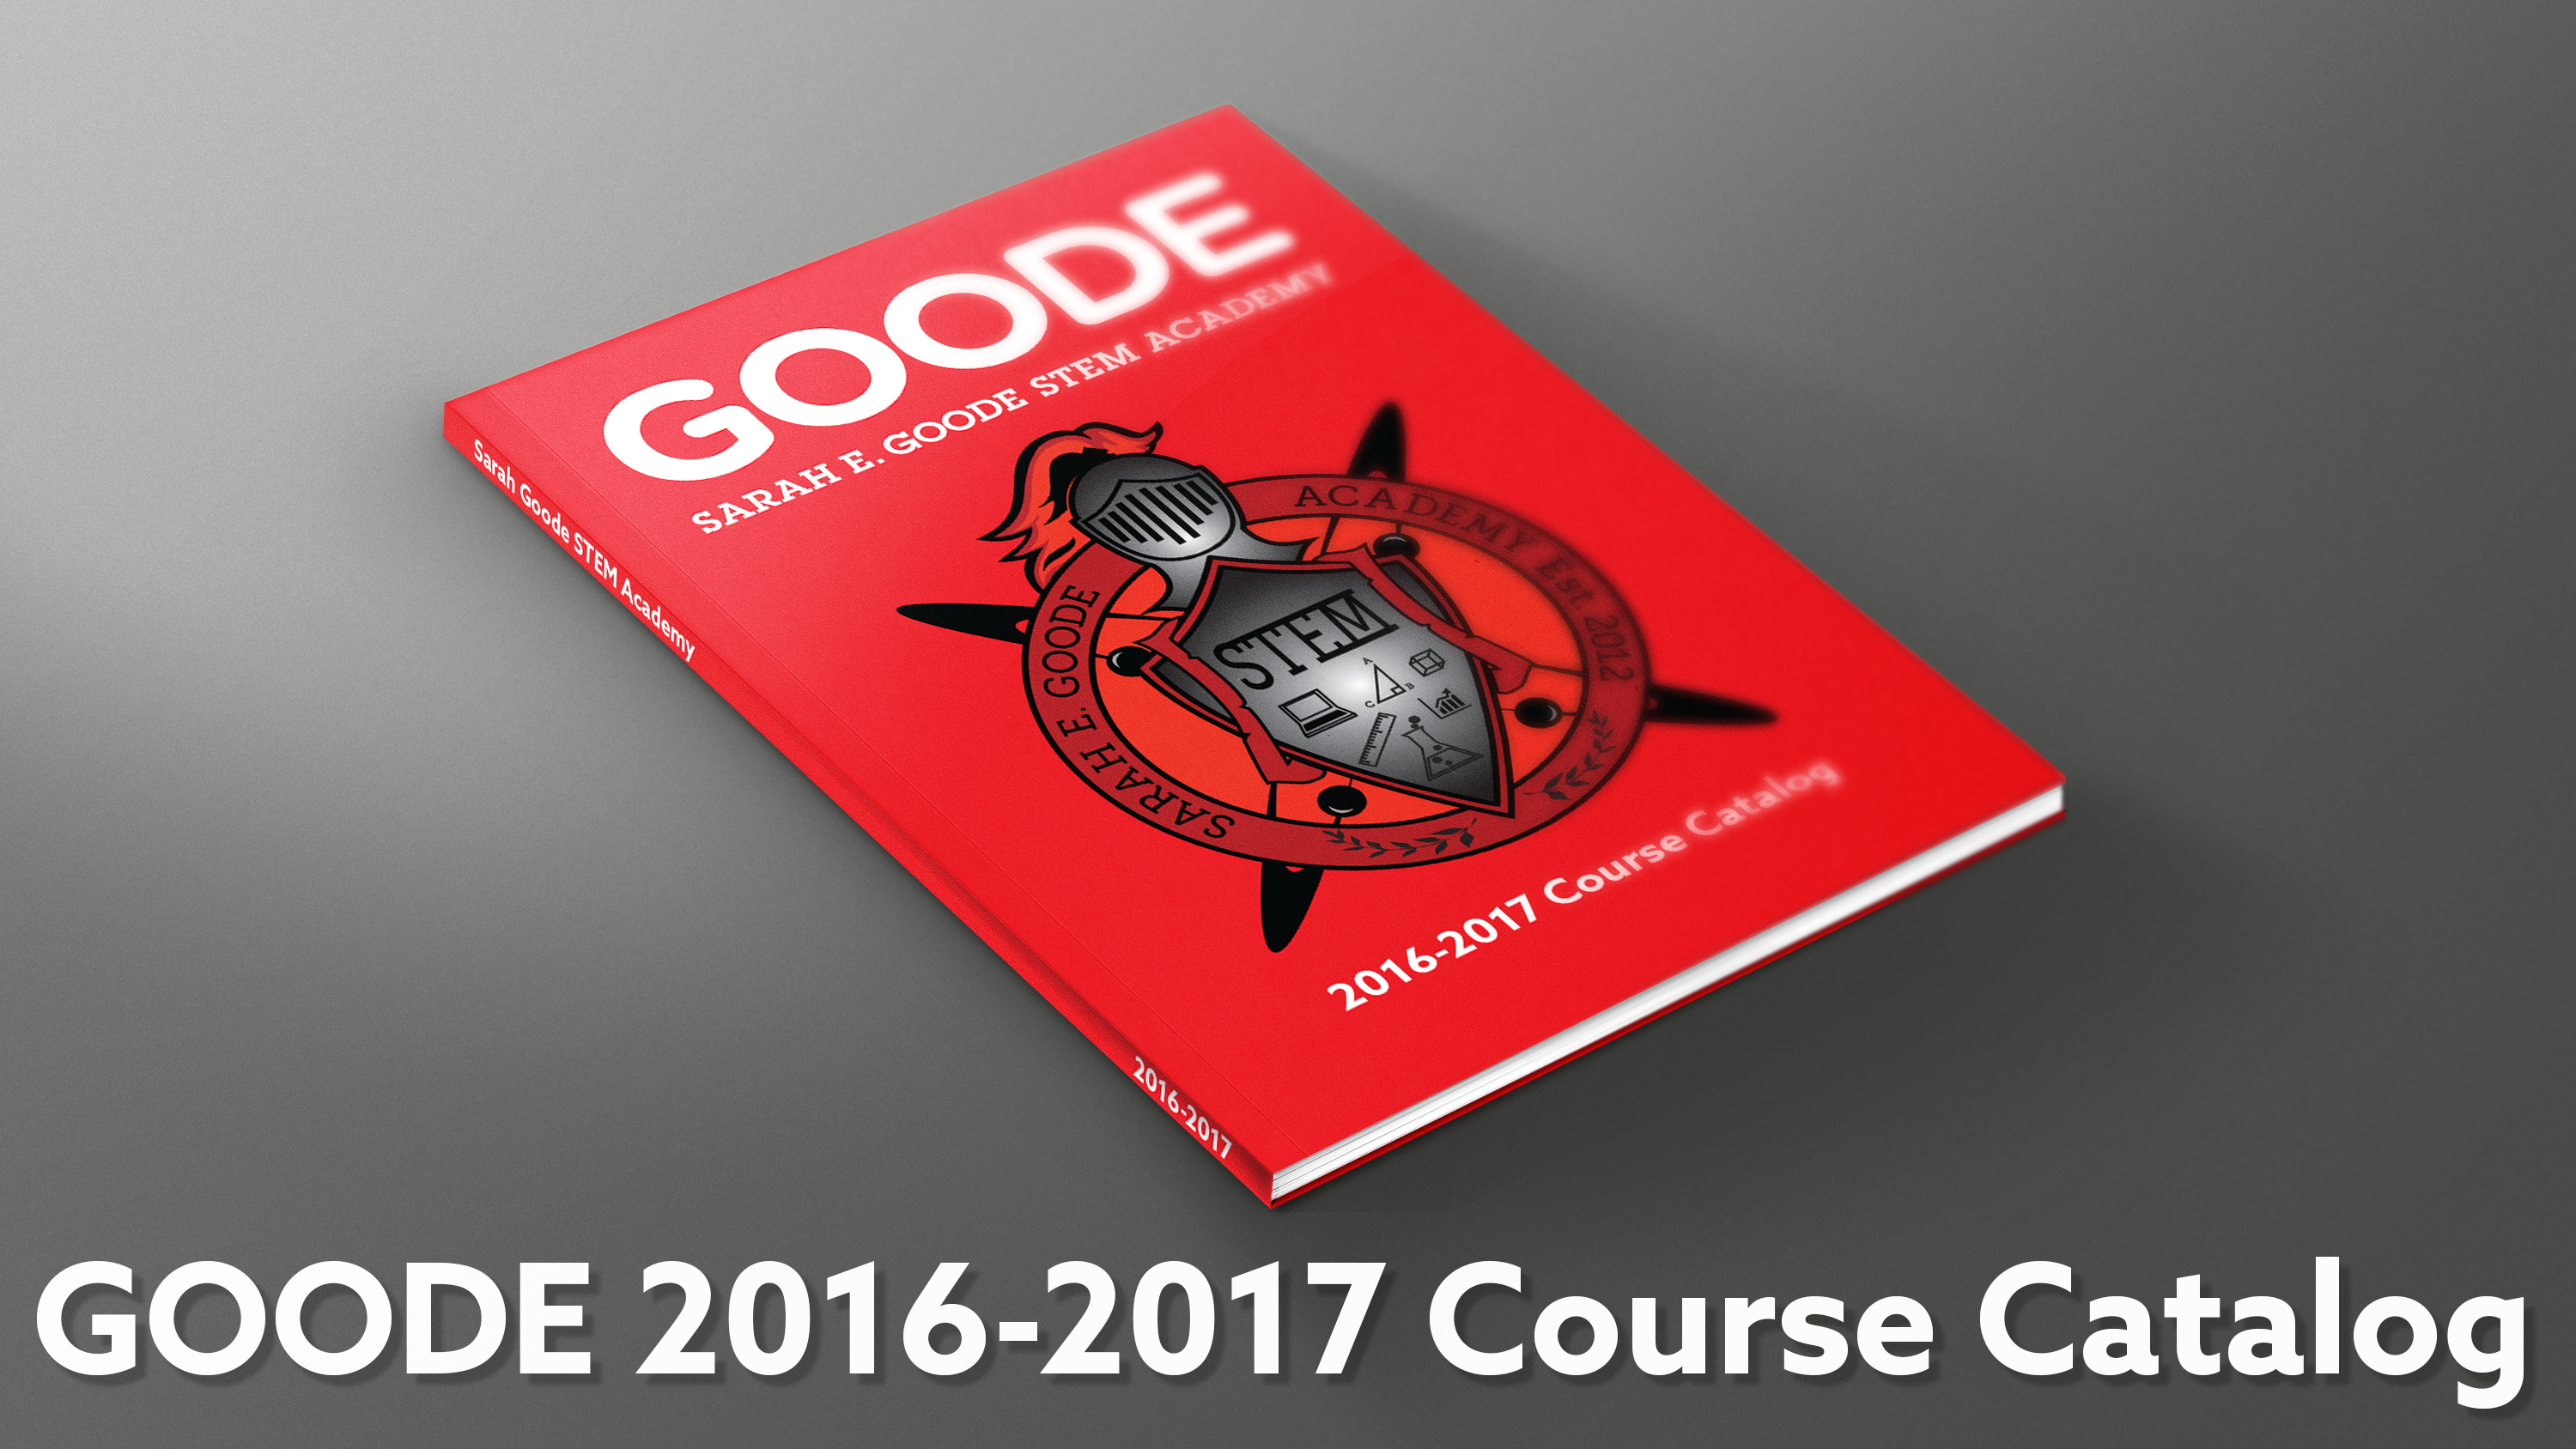 GOODE 2016-2017 Course Catalog Now Available